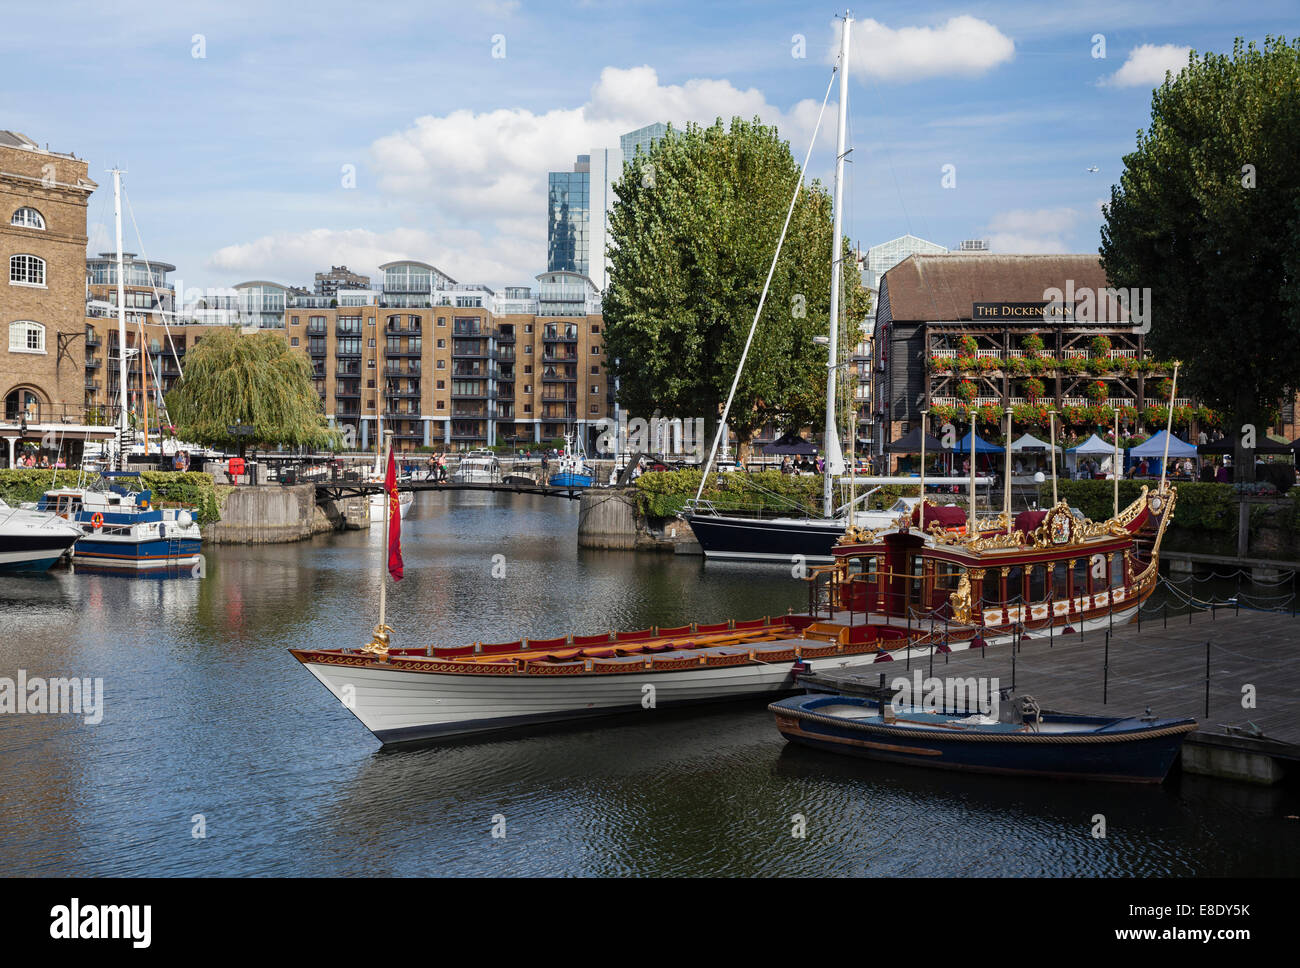 Gloriana, The Queen's Row Barge moored at St. Katharine's Docks, London, England, UK - Stock Image